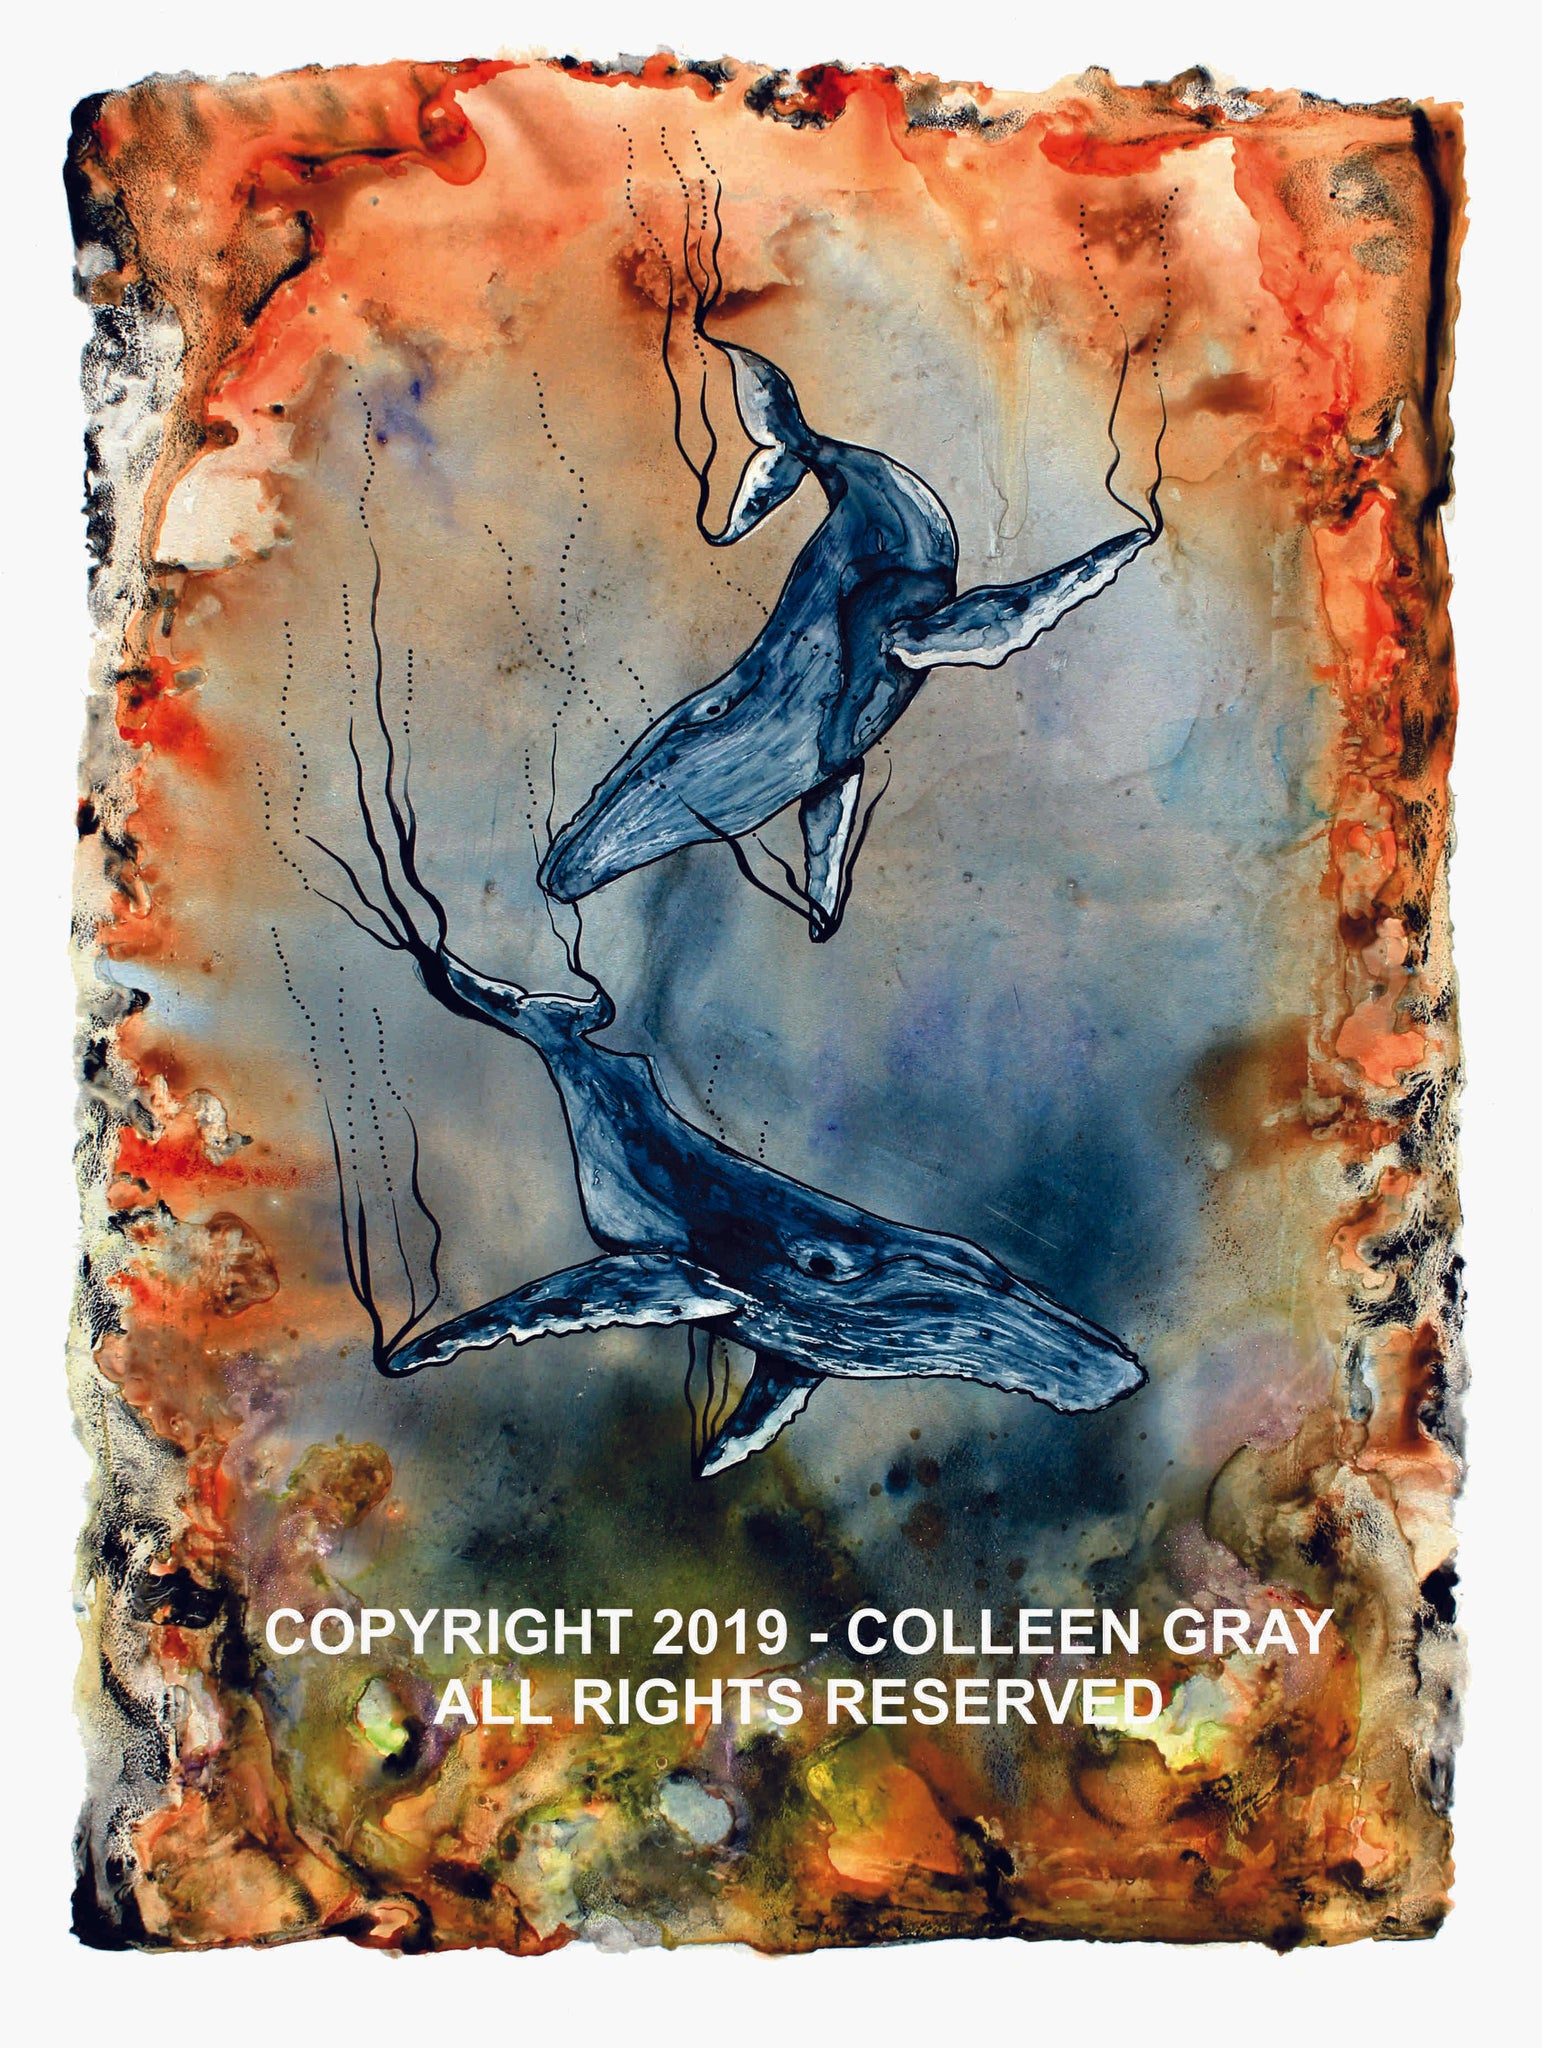 Image of Title: Coral Choir 16x20 archival print by Metis Artist Colleen Gray Indigenous Canadian Art Work. Image of two whales swimming. Very orange and blue. For sale at https://artforaidshop.ca